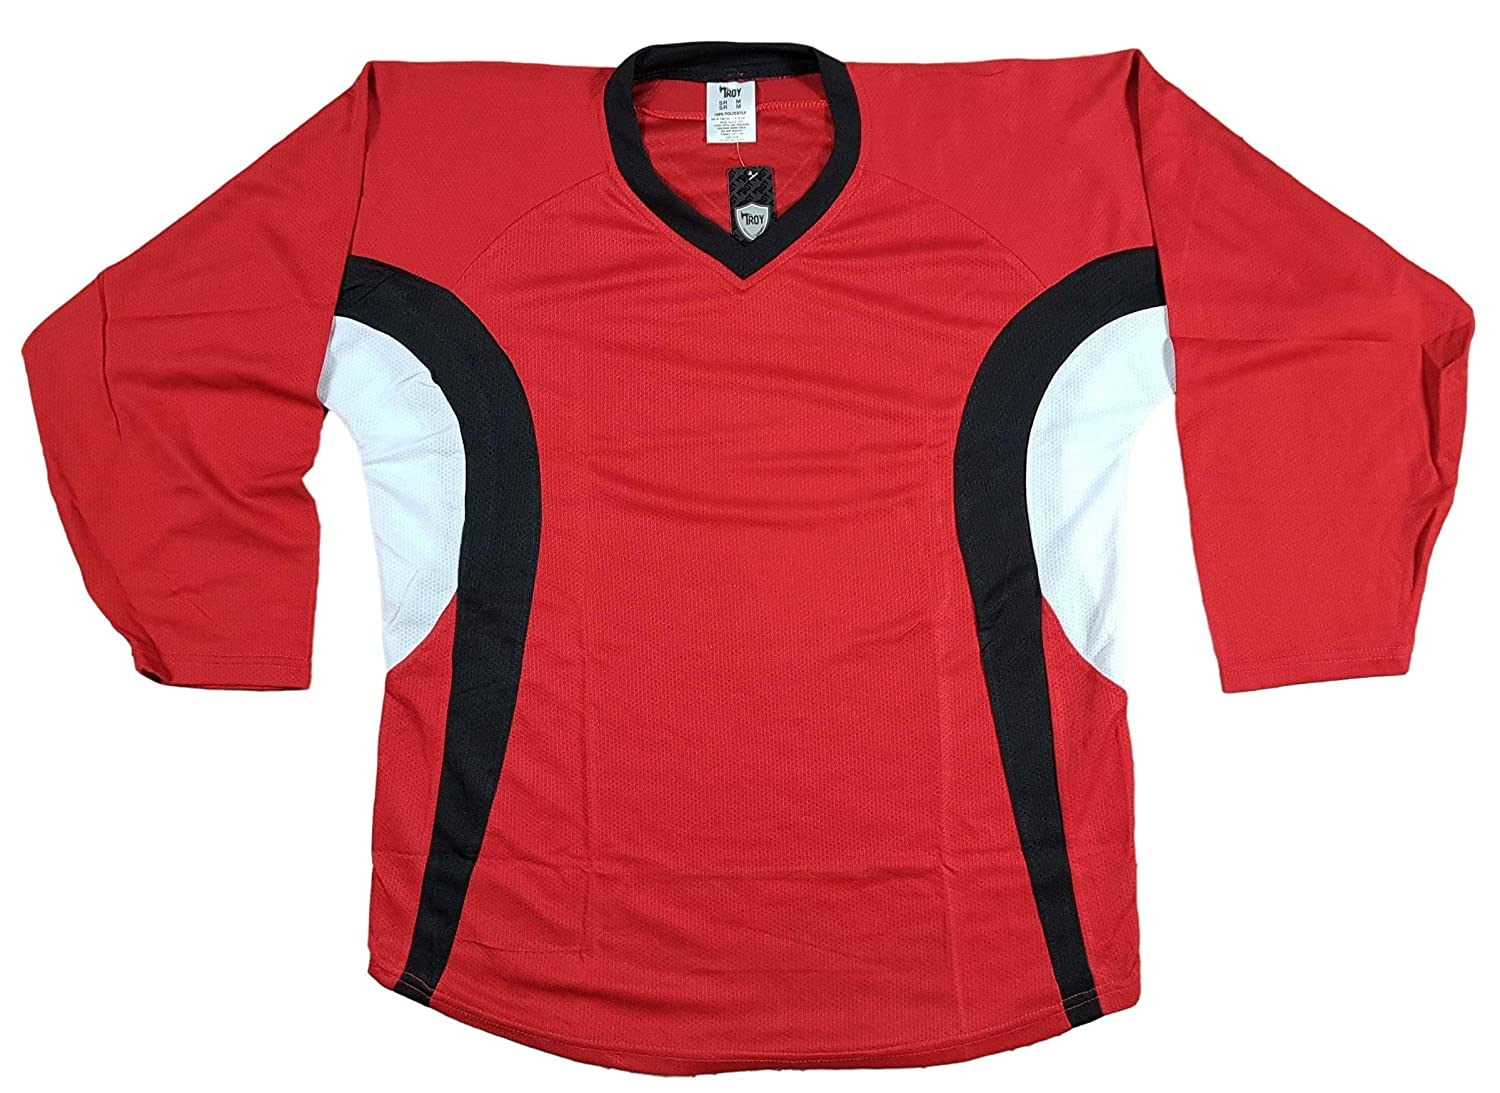 Troy Practice Hockey Jersey for Men - Lghtweight Durable Adult Jerseys